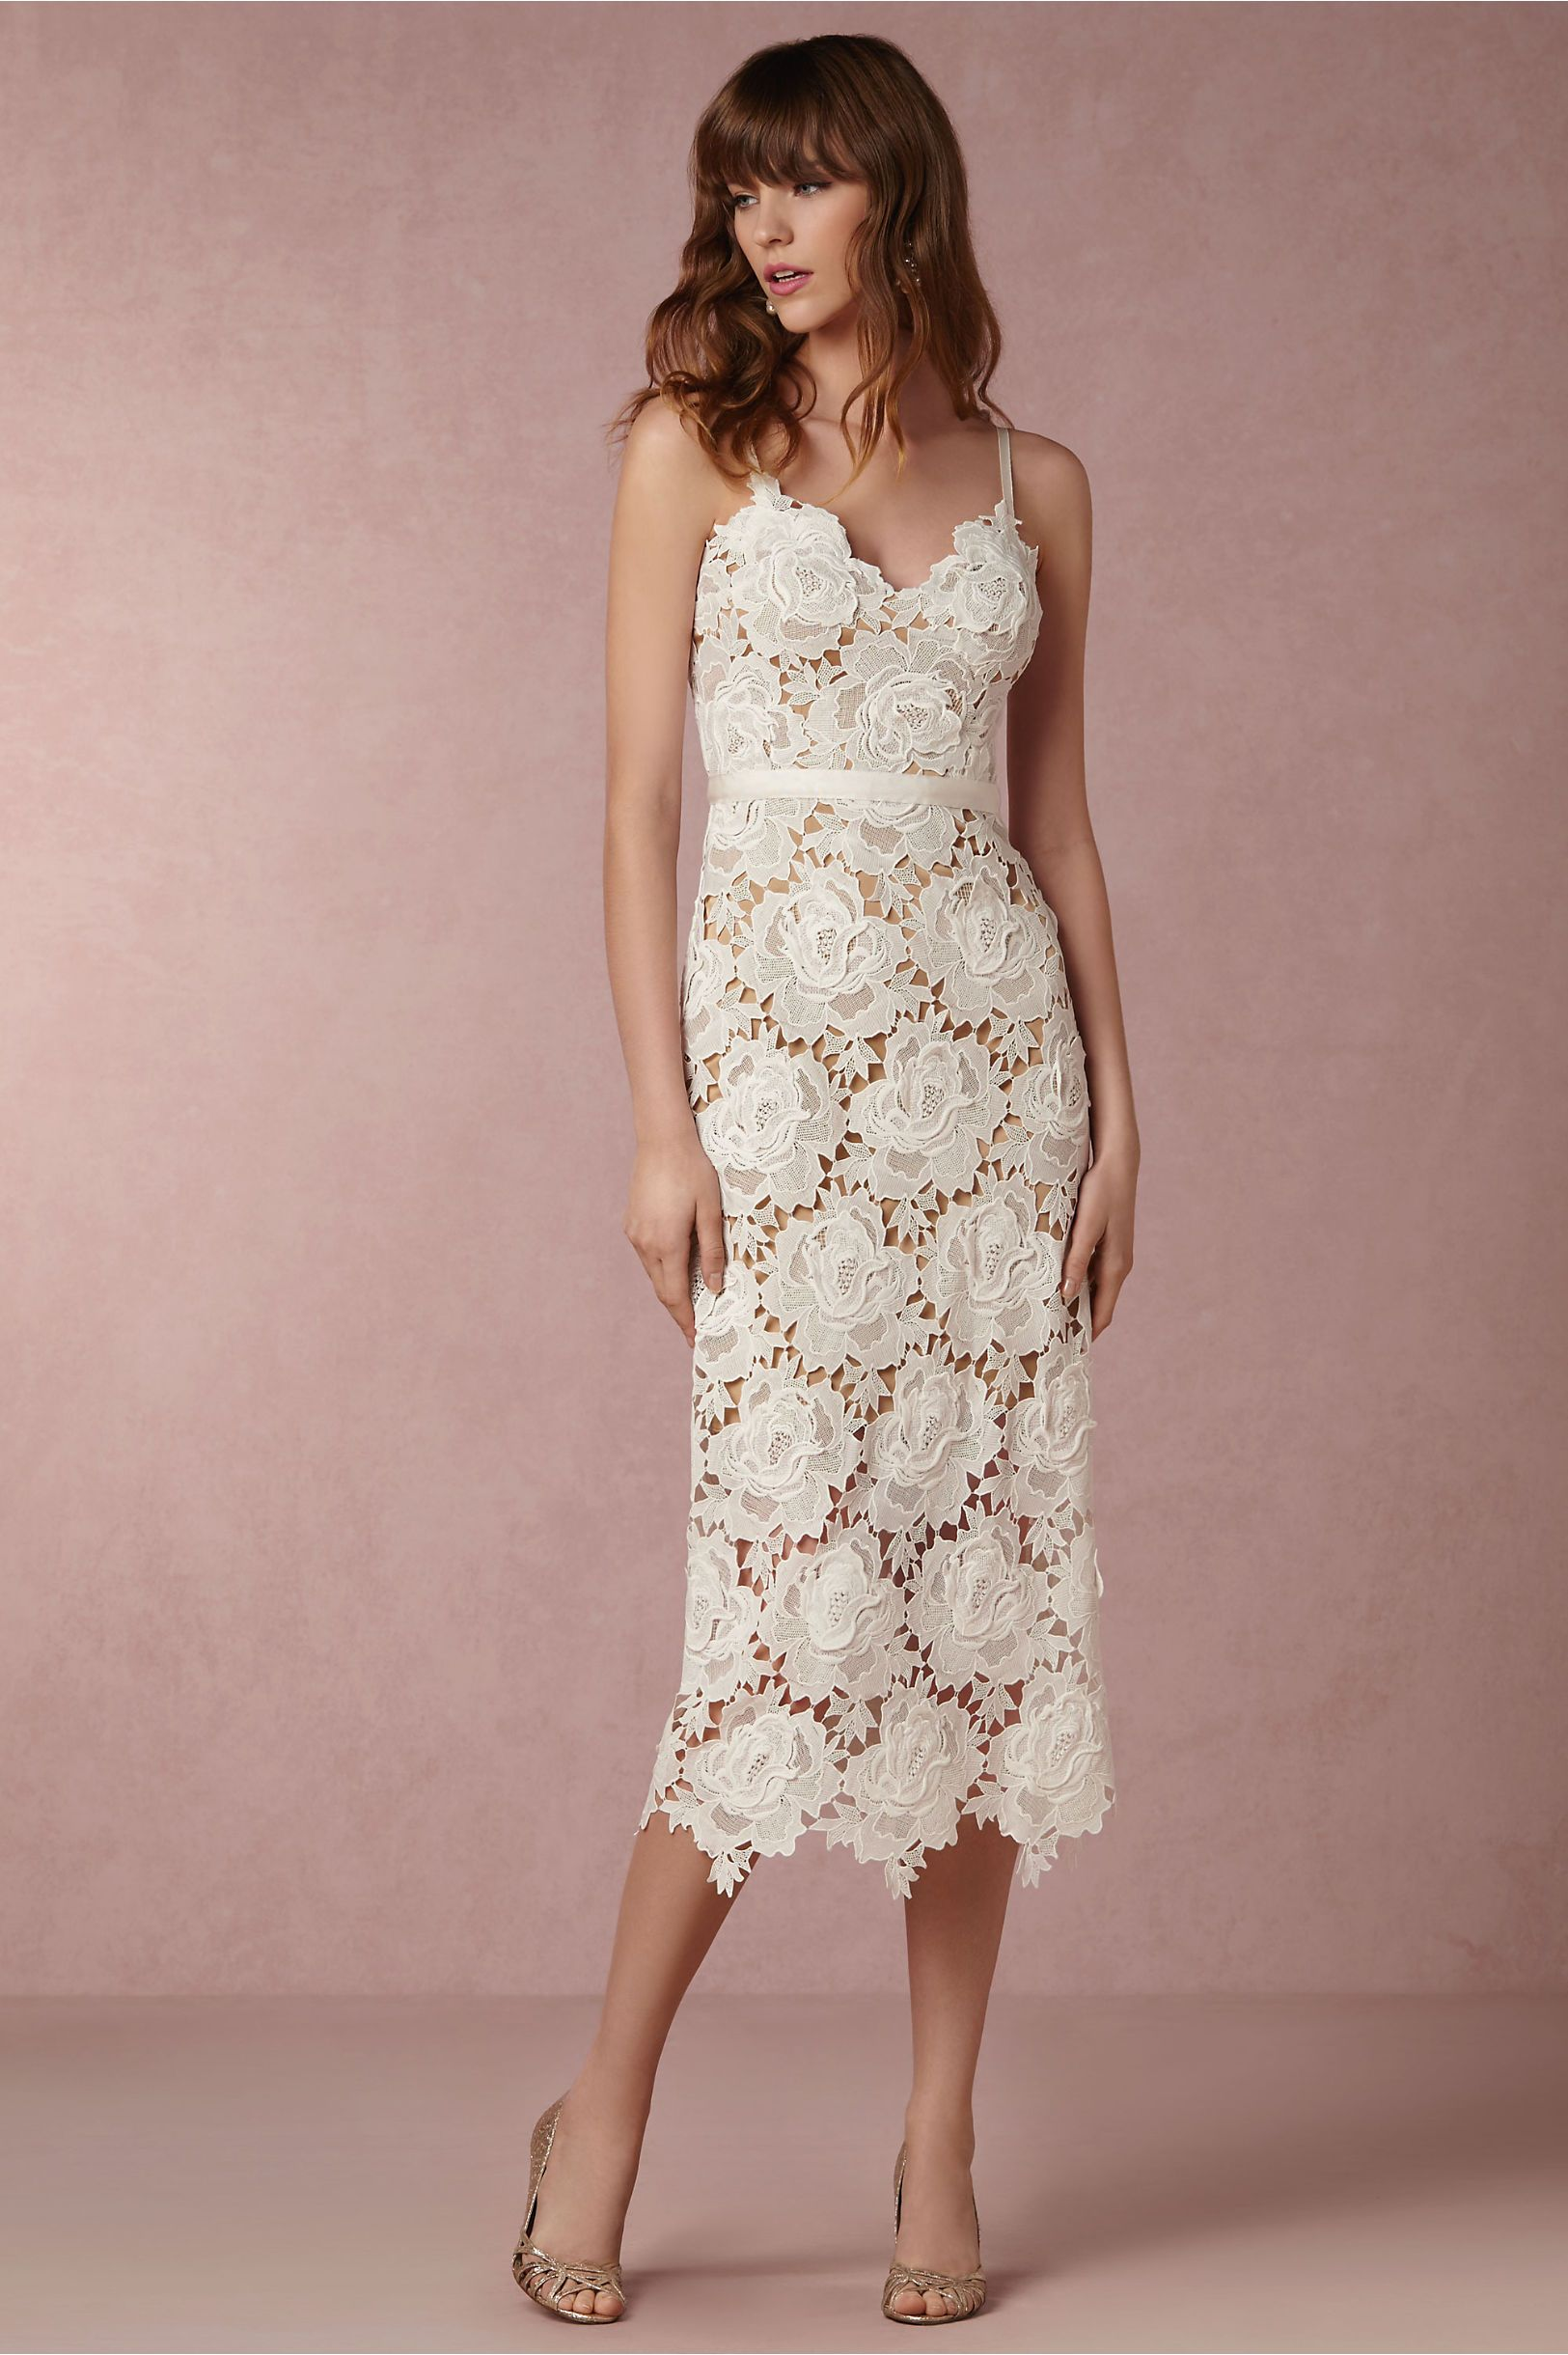 4daa04d4575 BHLDN Frida Dress in Bride Reception   Rehearsal Dresses at BHLDN